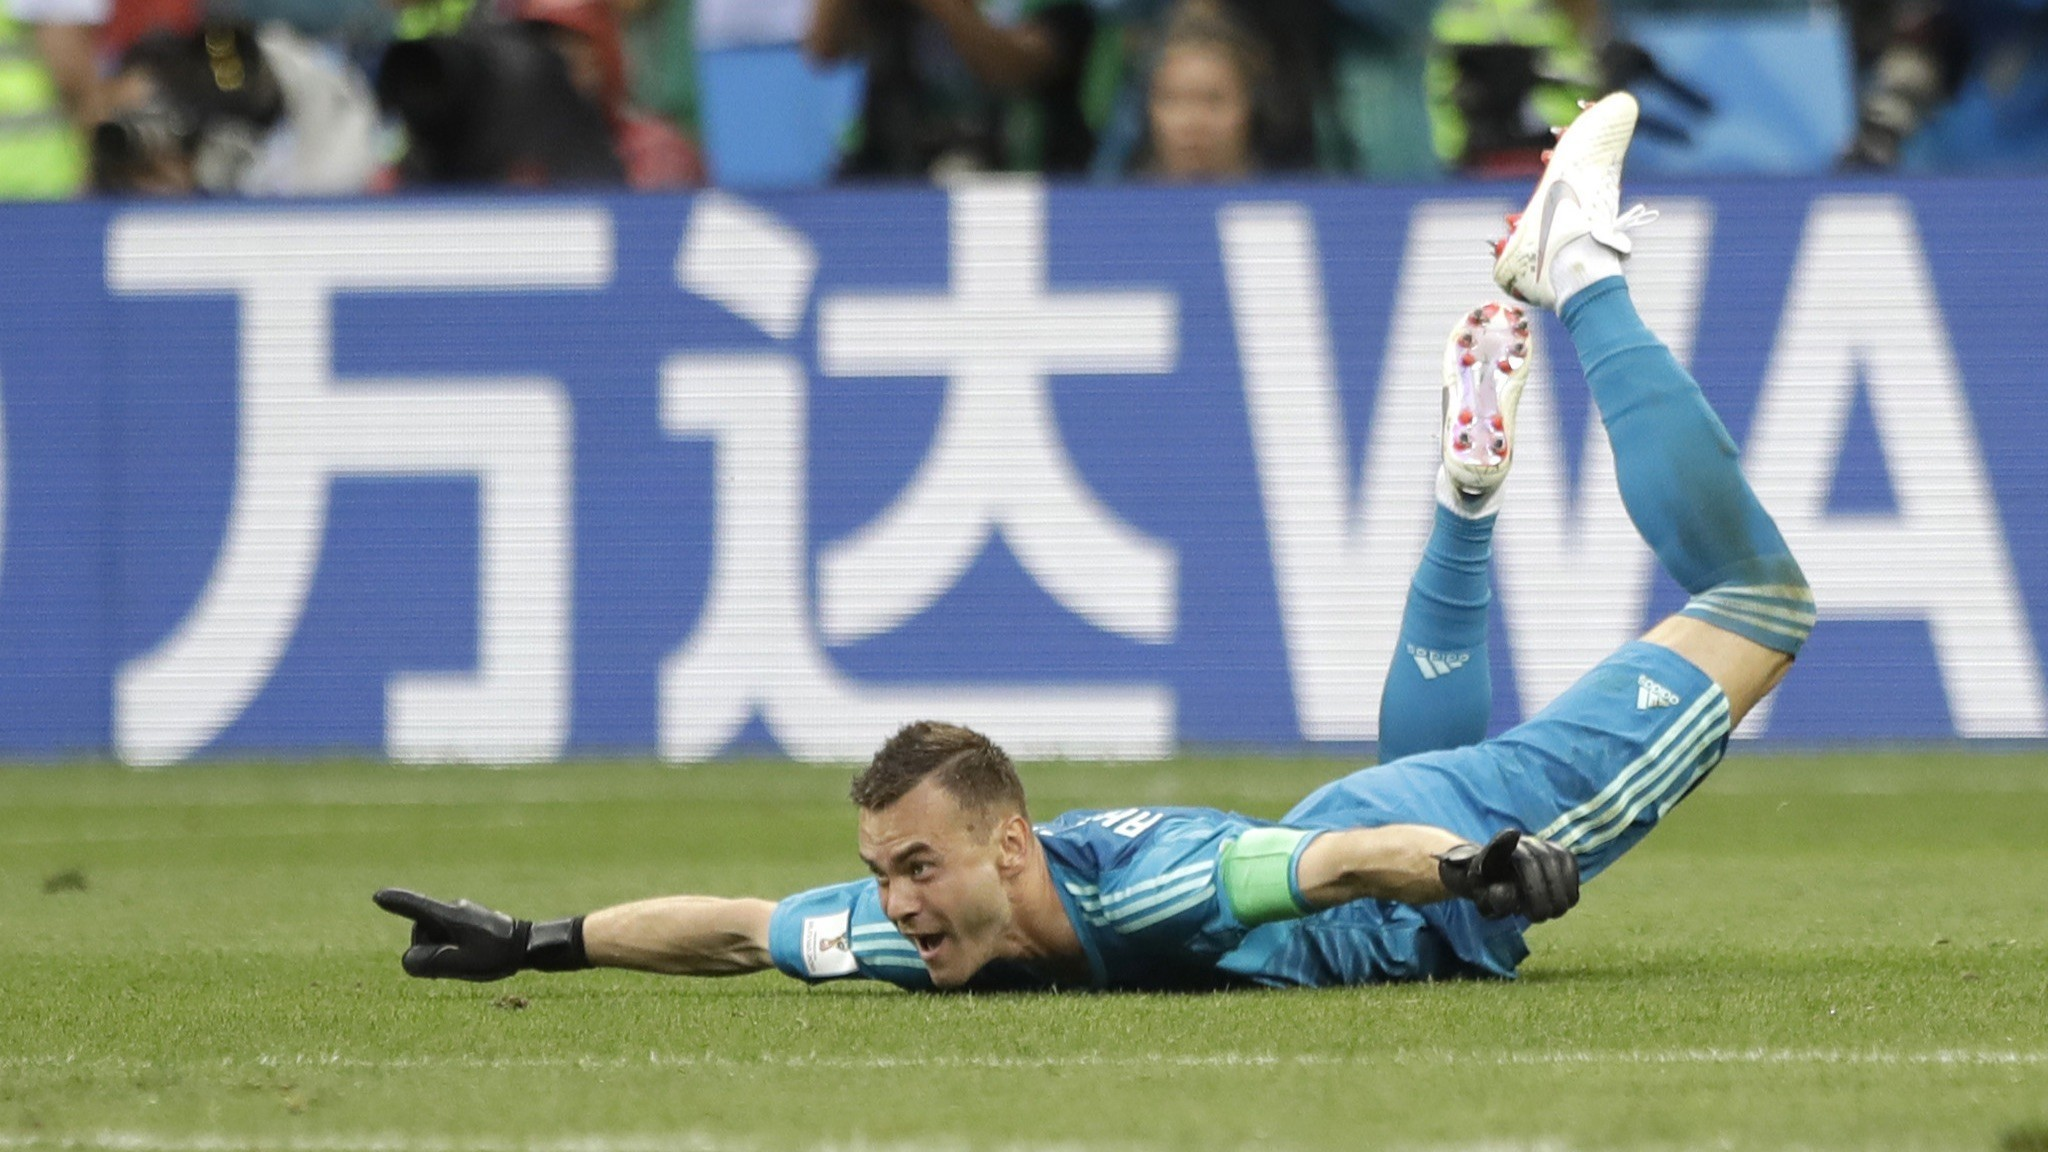 Russia provides another improbable World Cup surprise with elimination of Spain